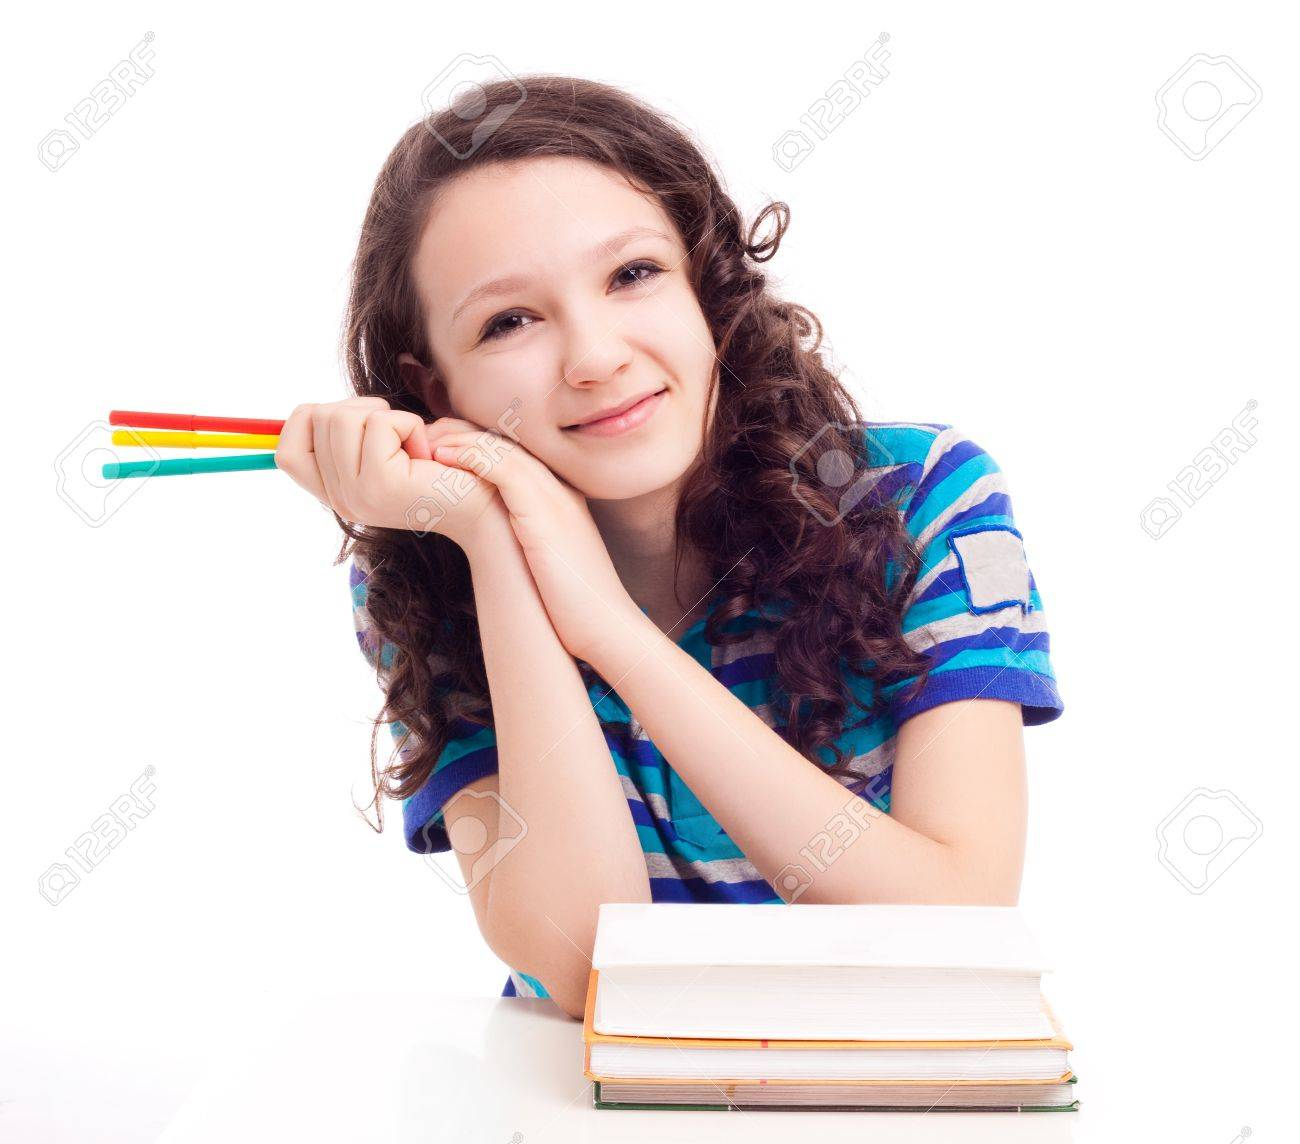 thirteen year old schoolgirl sitting by the table with pens and books, isolated against white background Stock Photo - 12282700